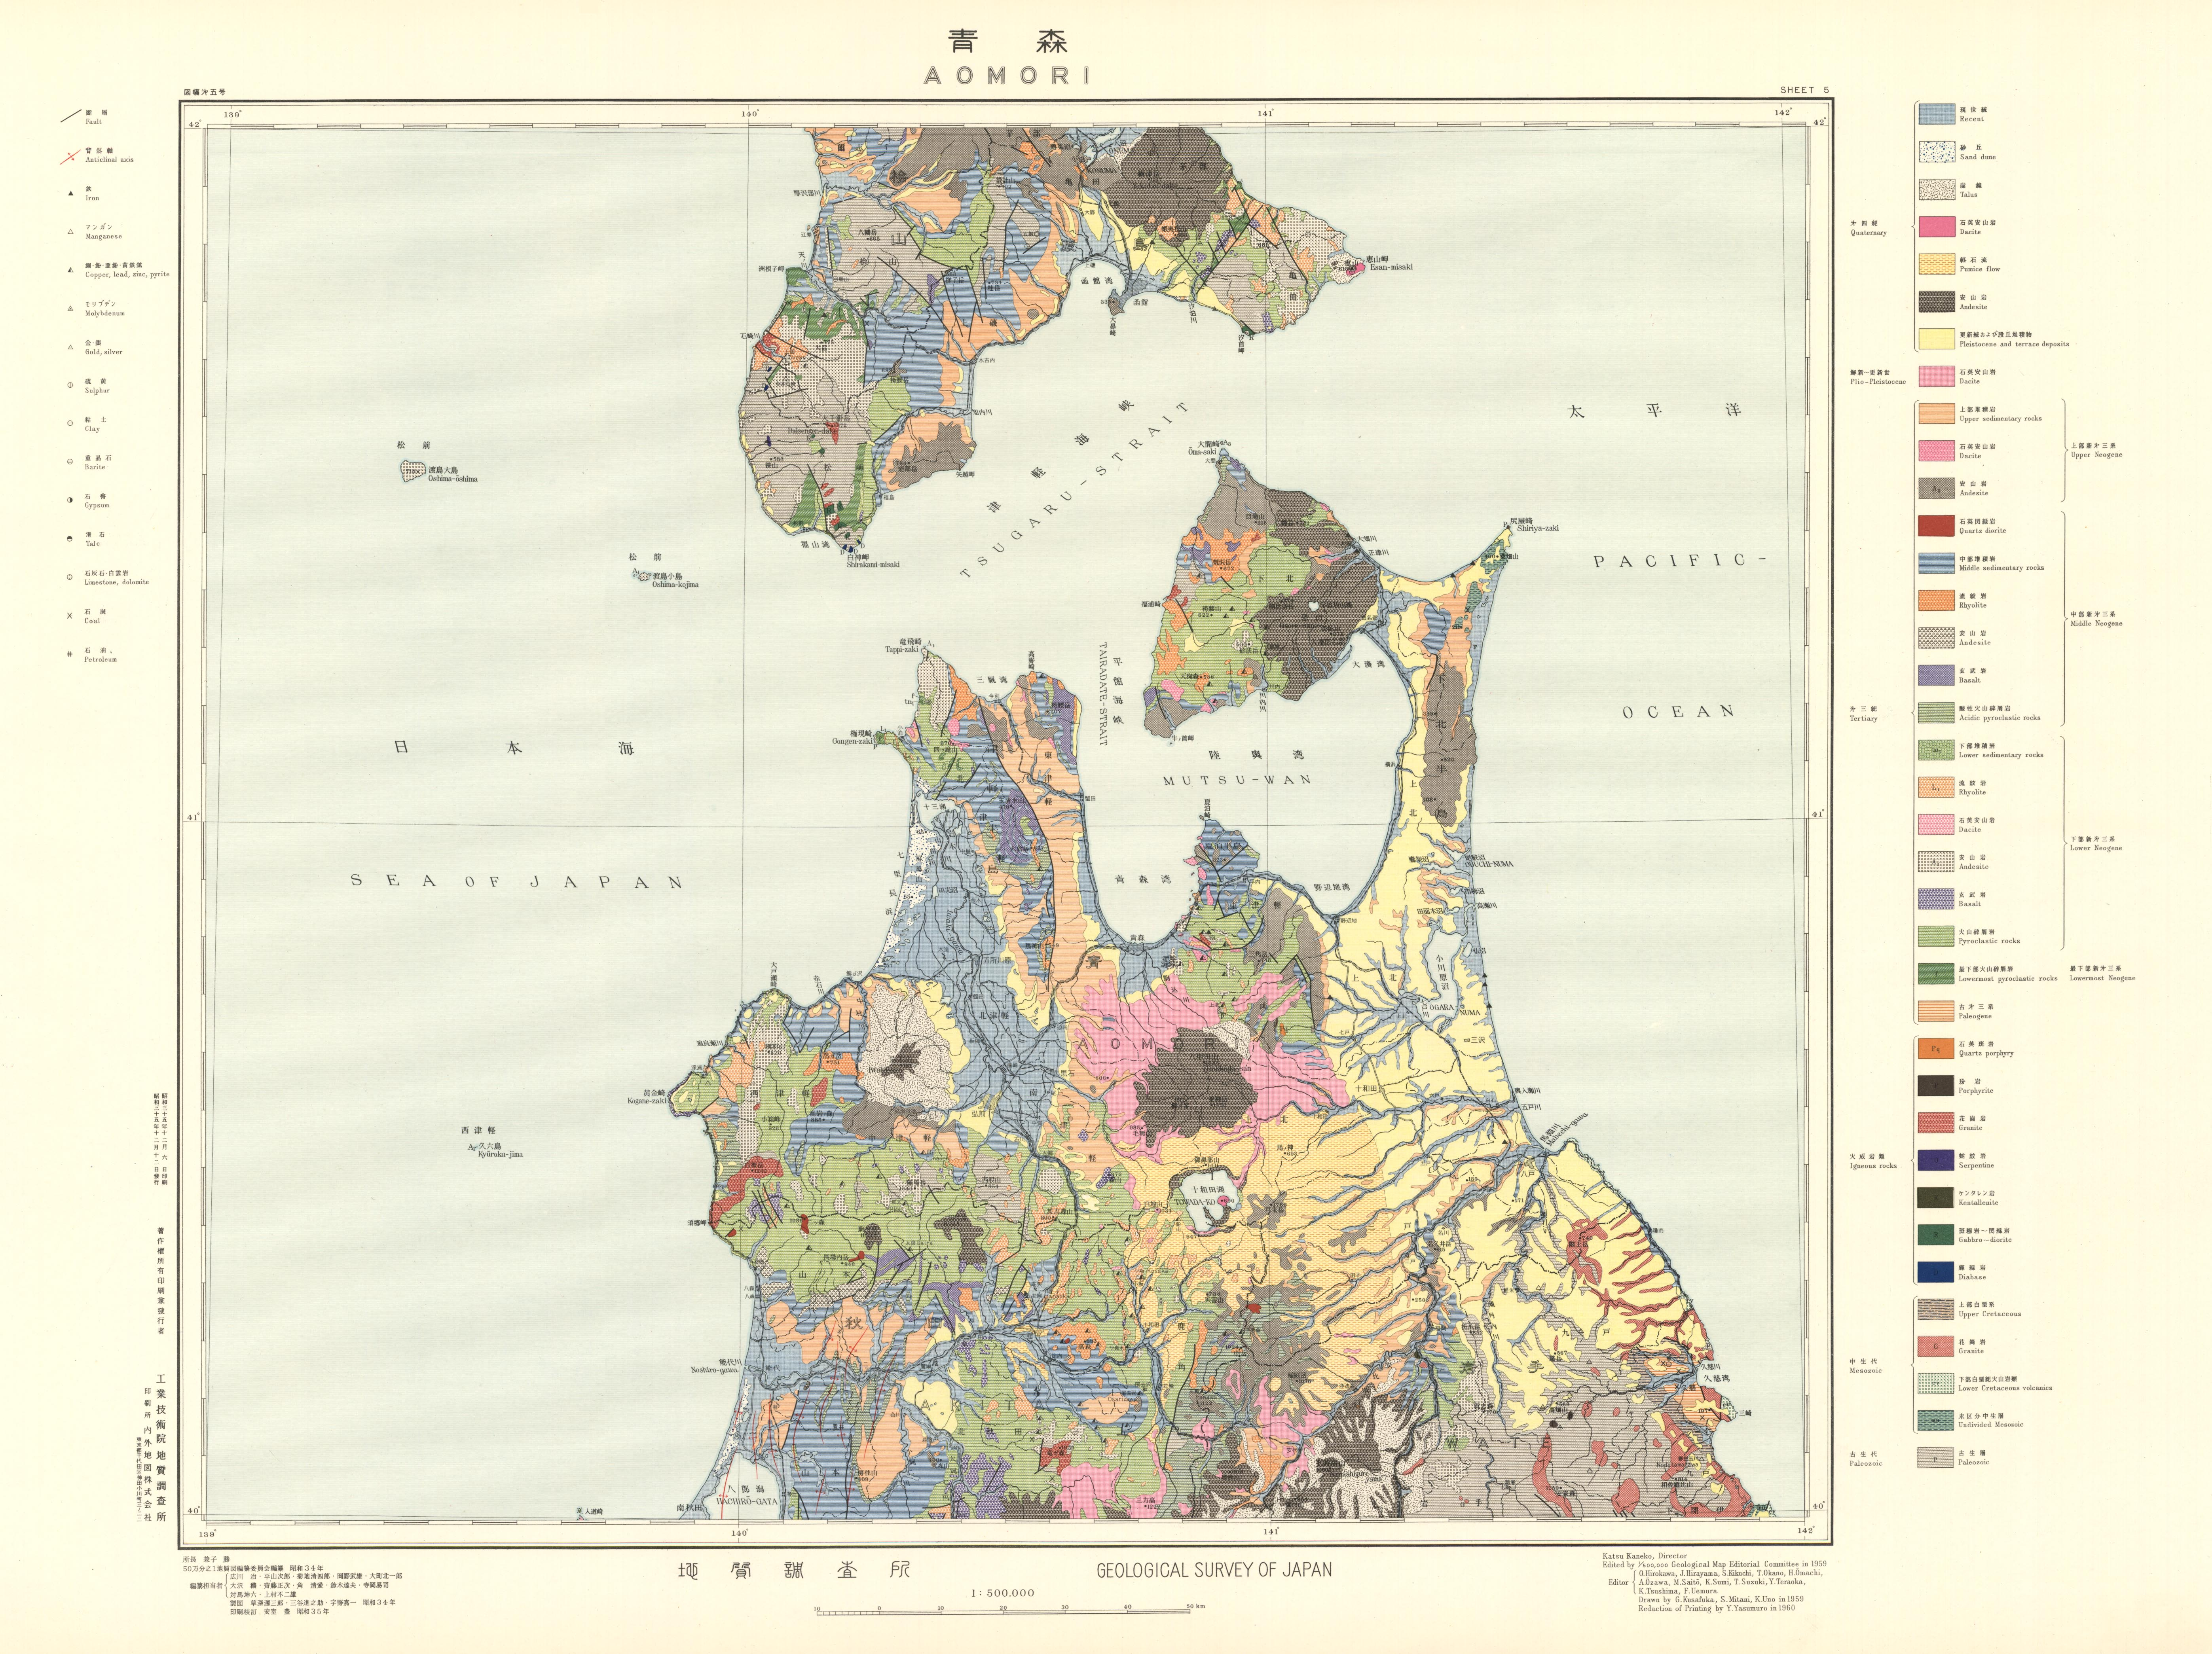 Catalogue Of Geological MapsGeological Survey Of Japan AIST - Aomori map